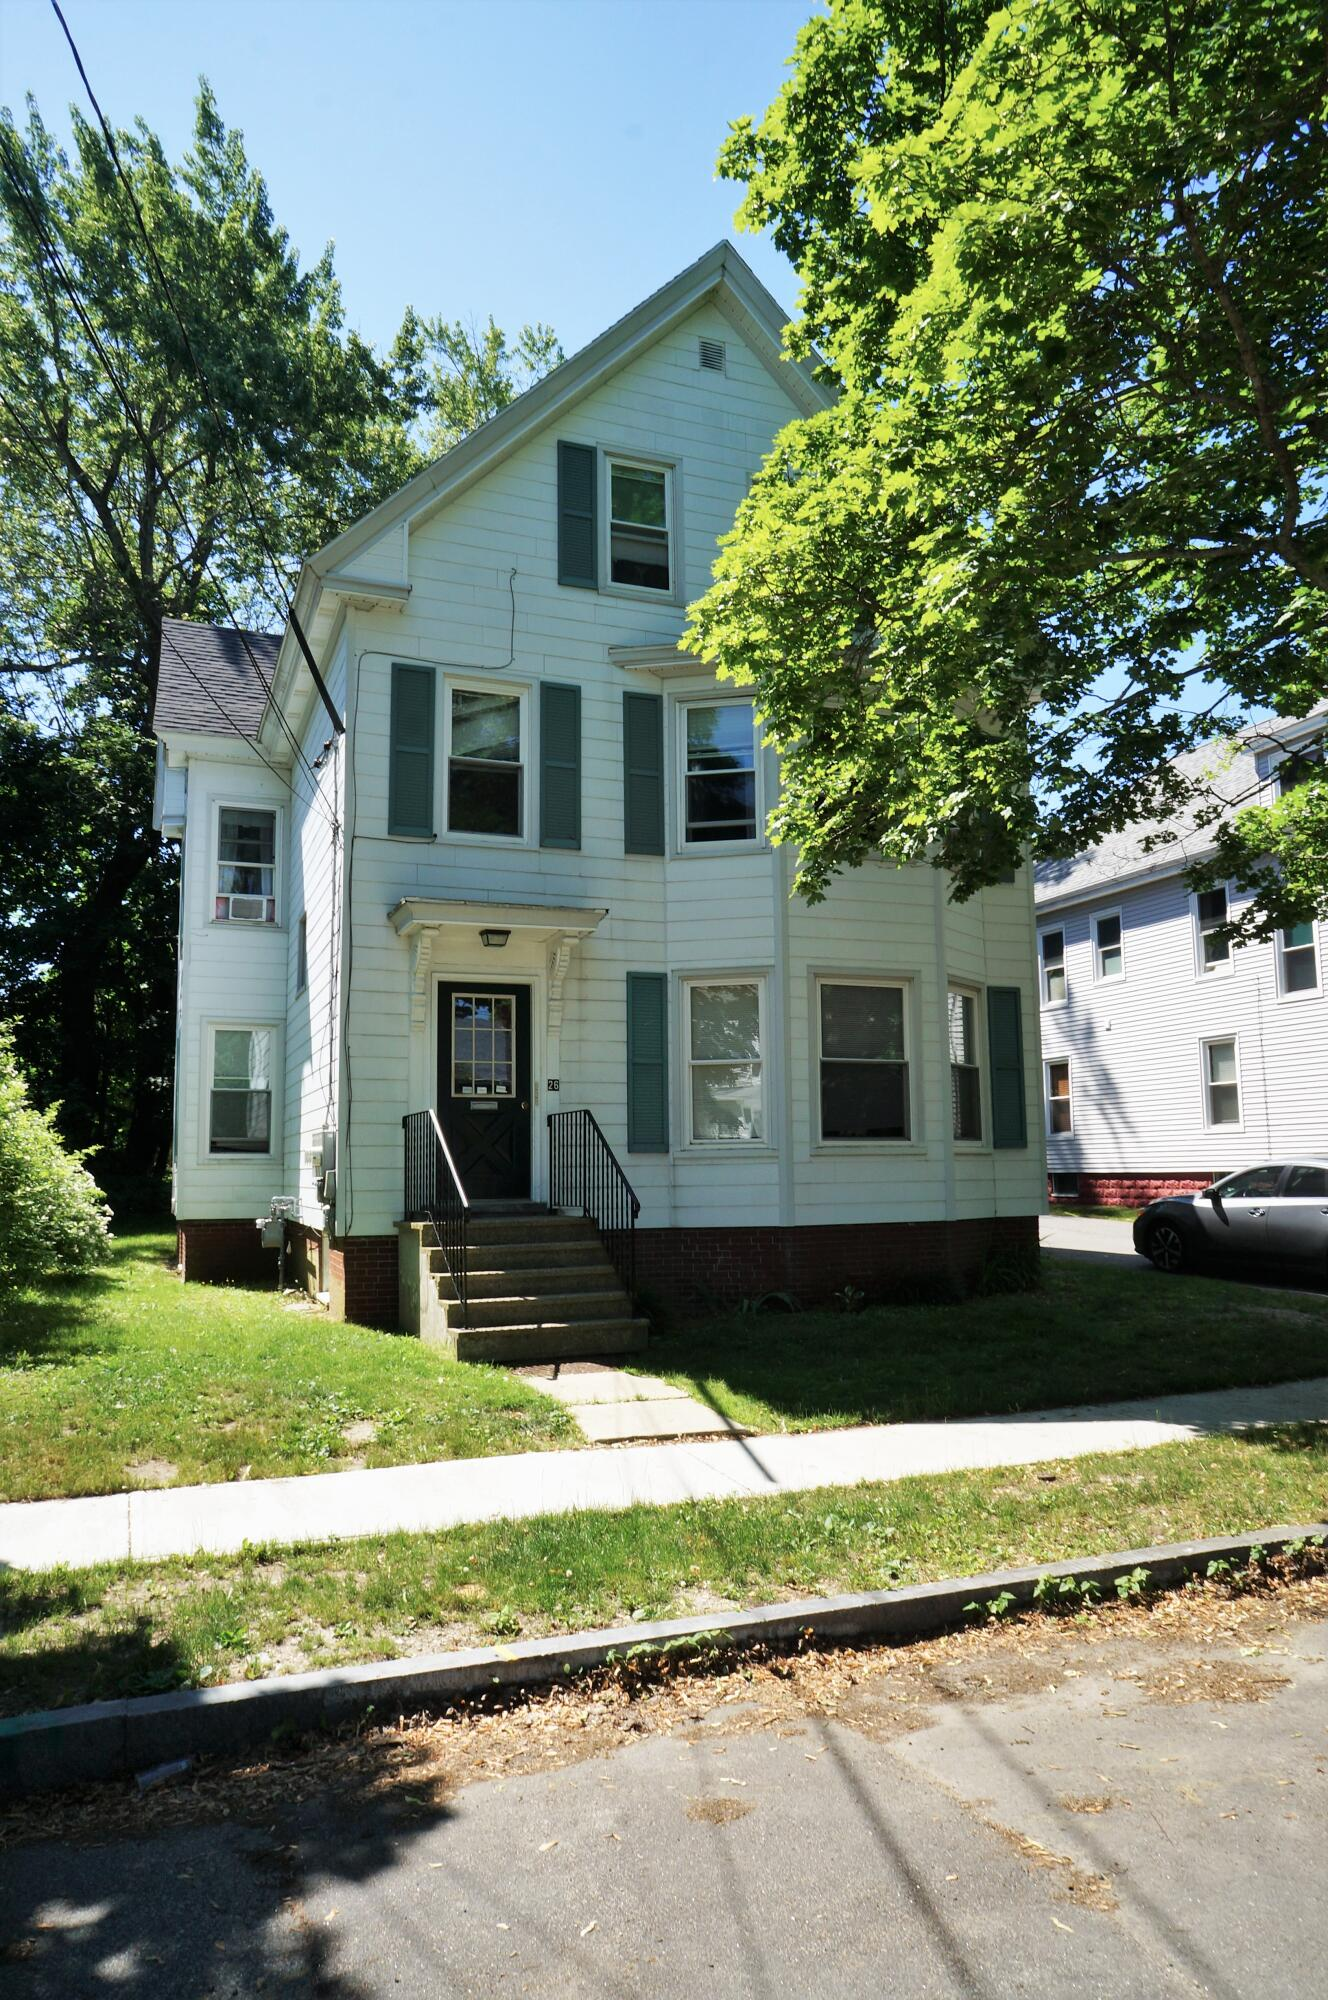 Main image for MLS listing 1497125